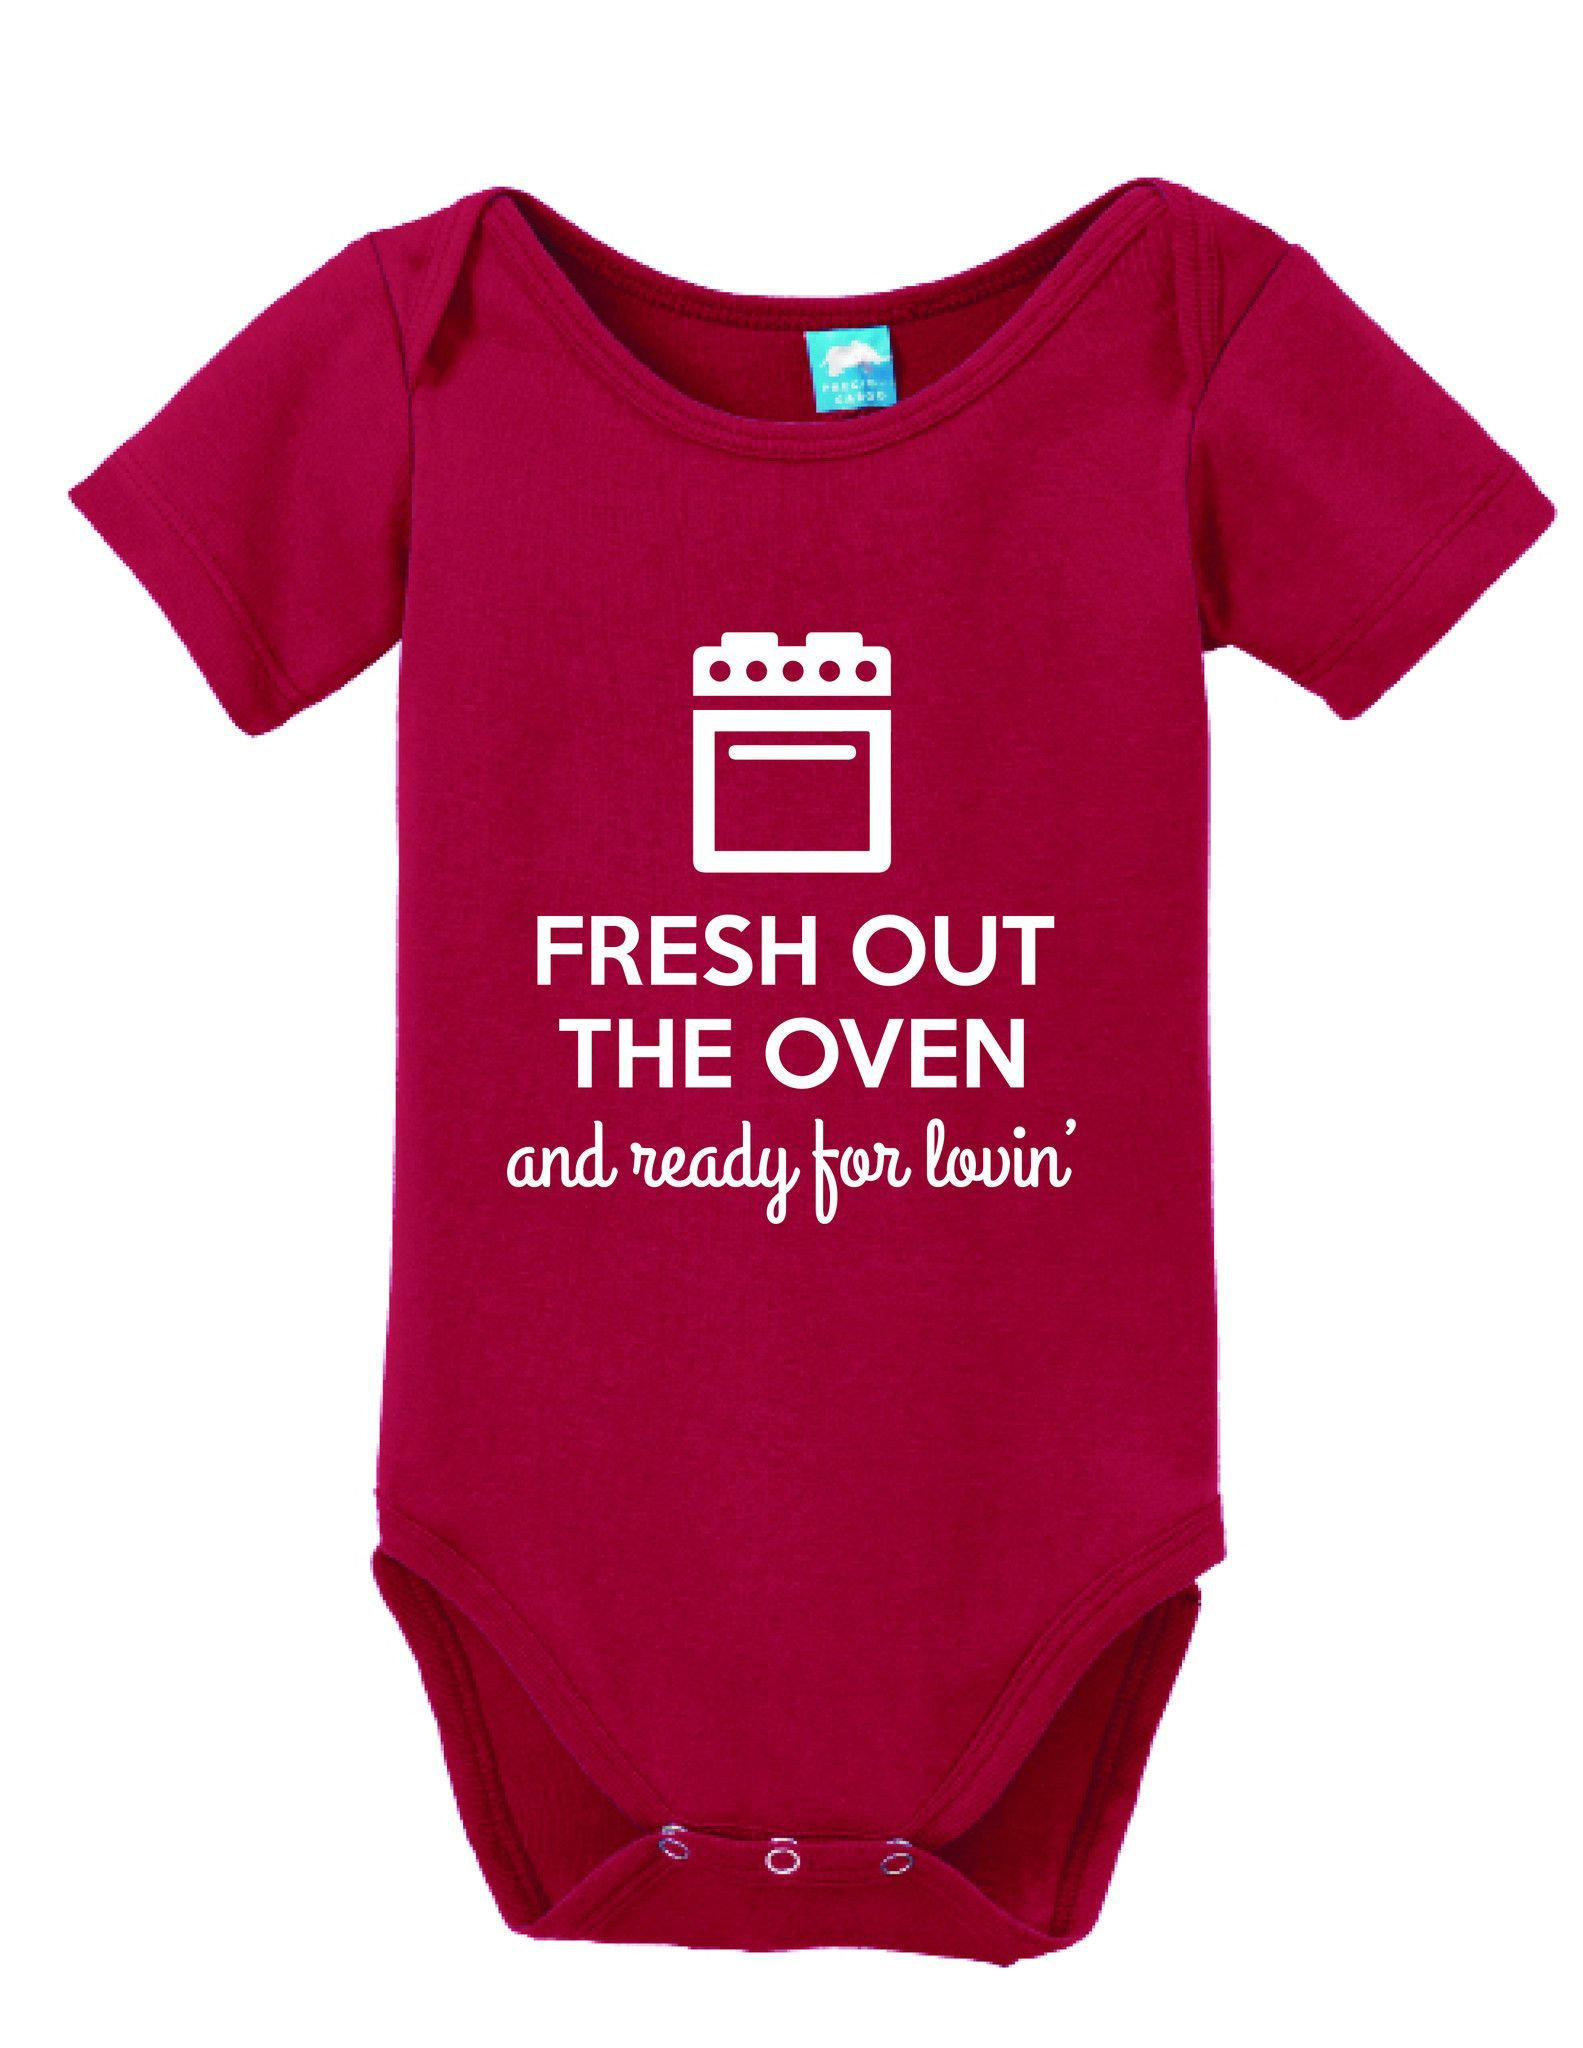 951ad21e2 Fresh Out The Oven and Ready for Lovin' Onesie Funny Bodysuit Baby Romper